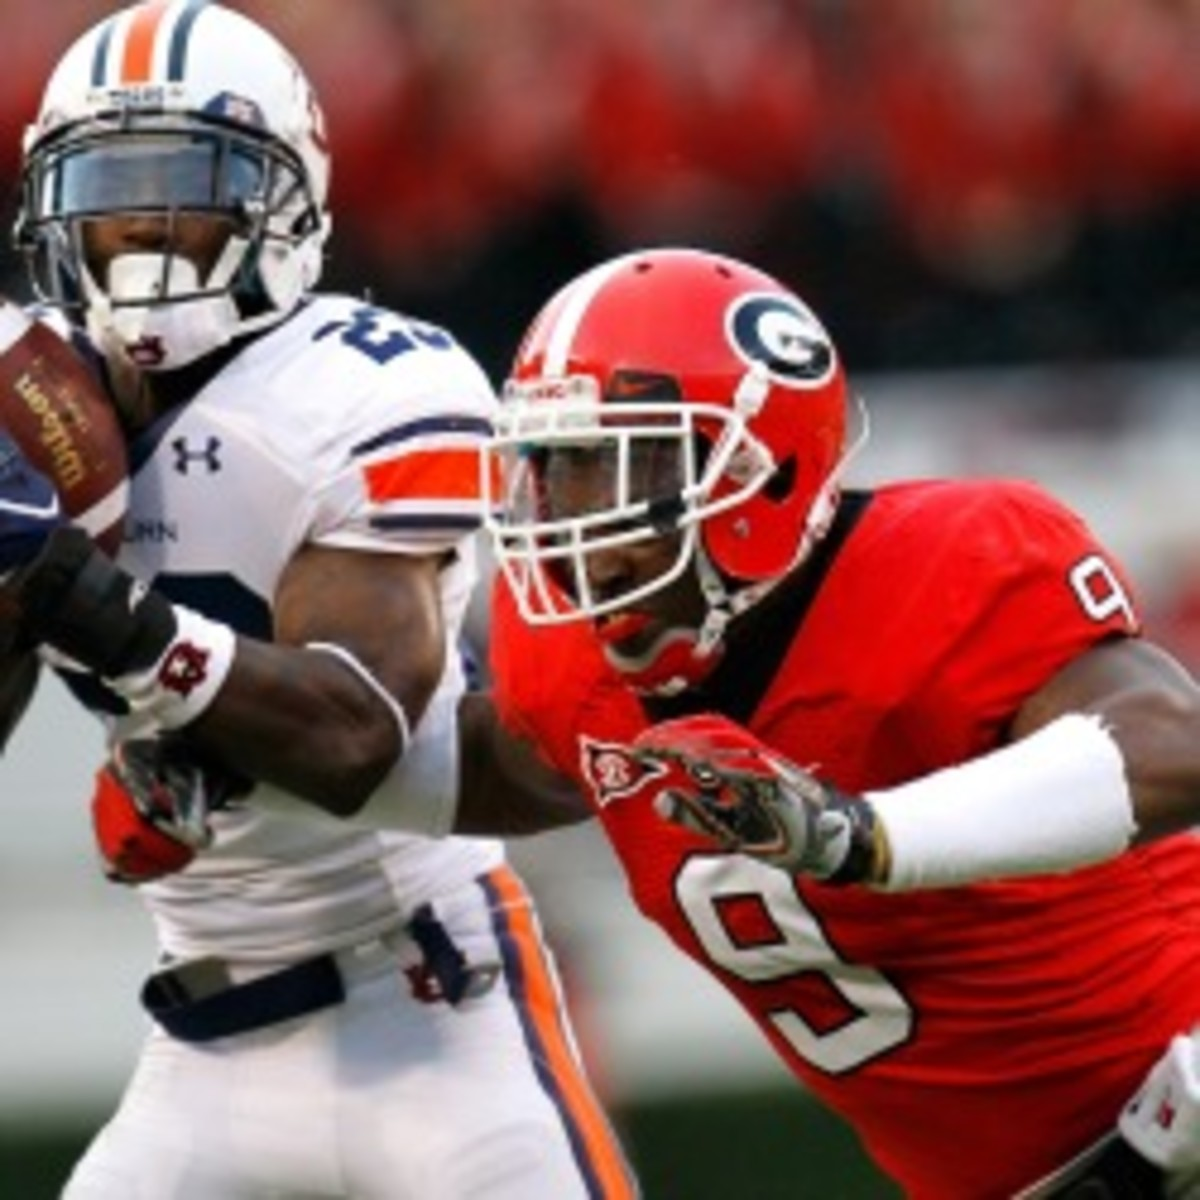 Former Georgia lineback Alec Ogletree was recently arrested for DUI. (Kevin C. Cox/Getty Images)